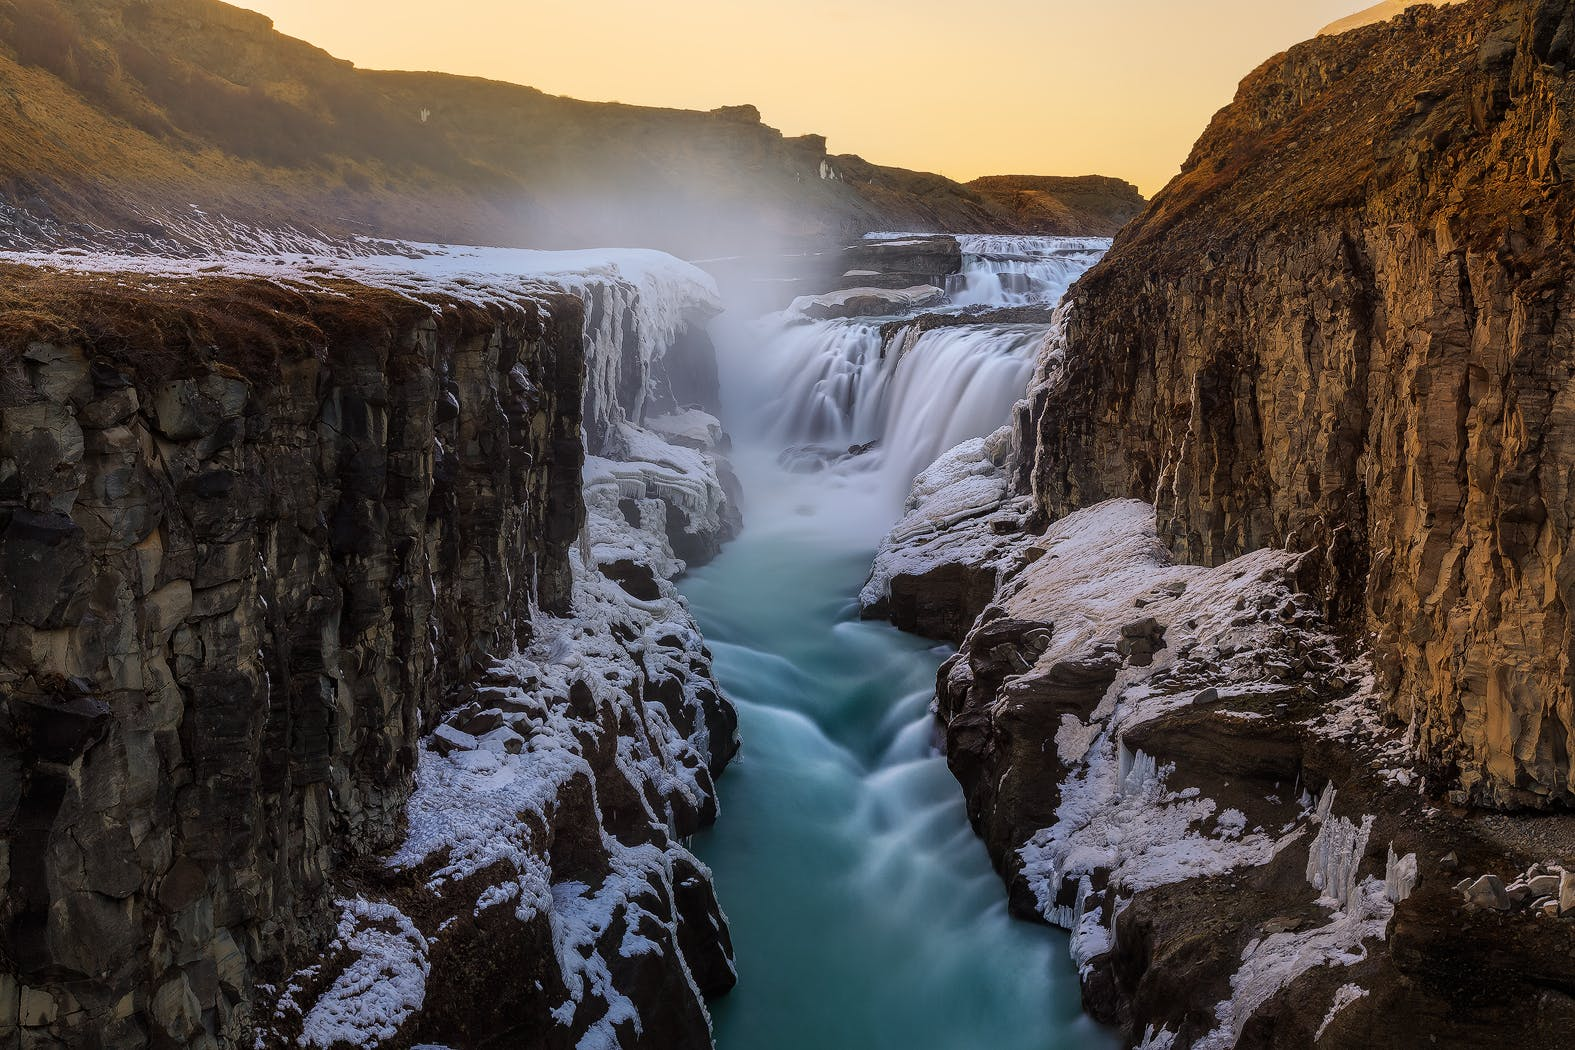 Gullfoss waterfall makes up one third of the famous Golden Circle tourist trail.